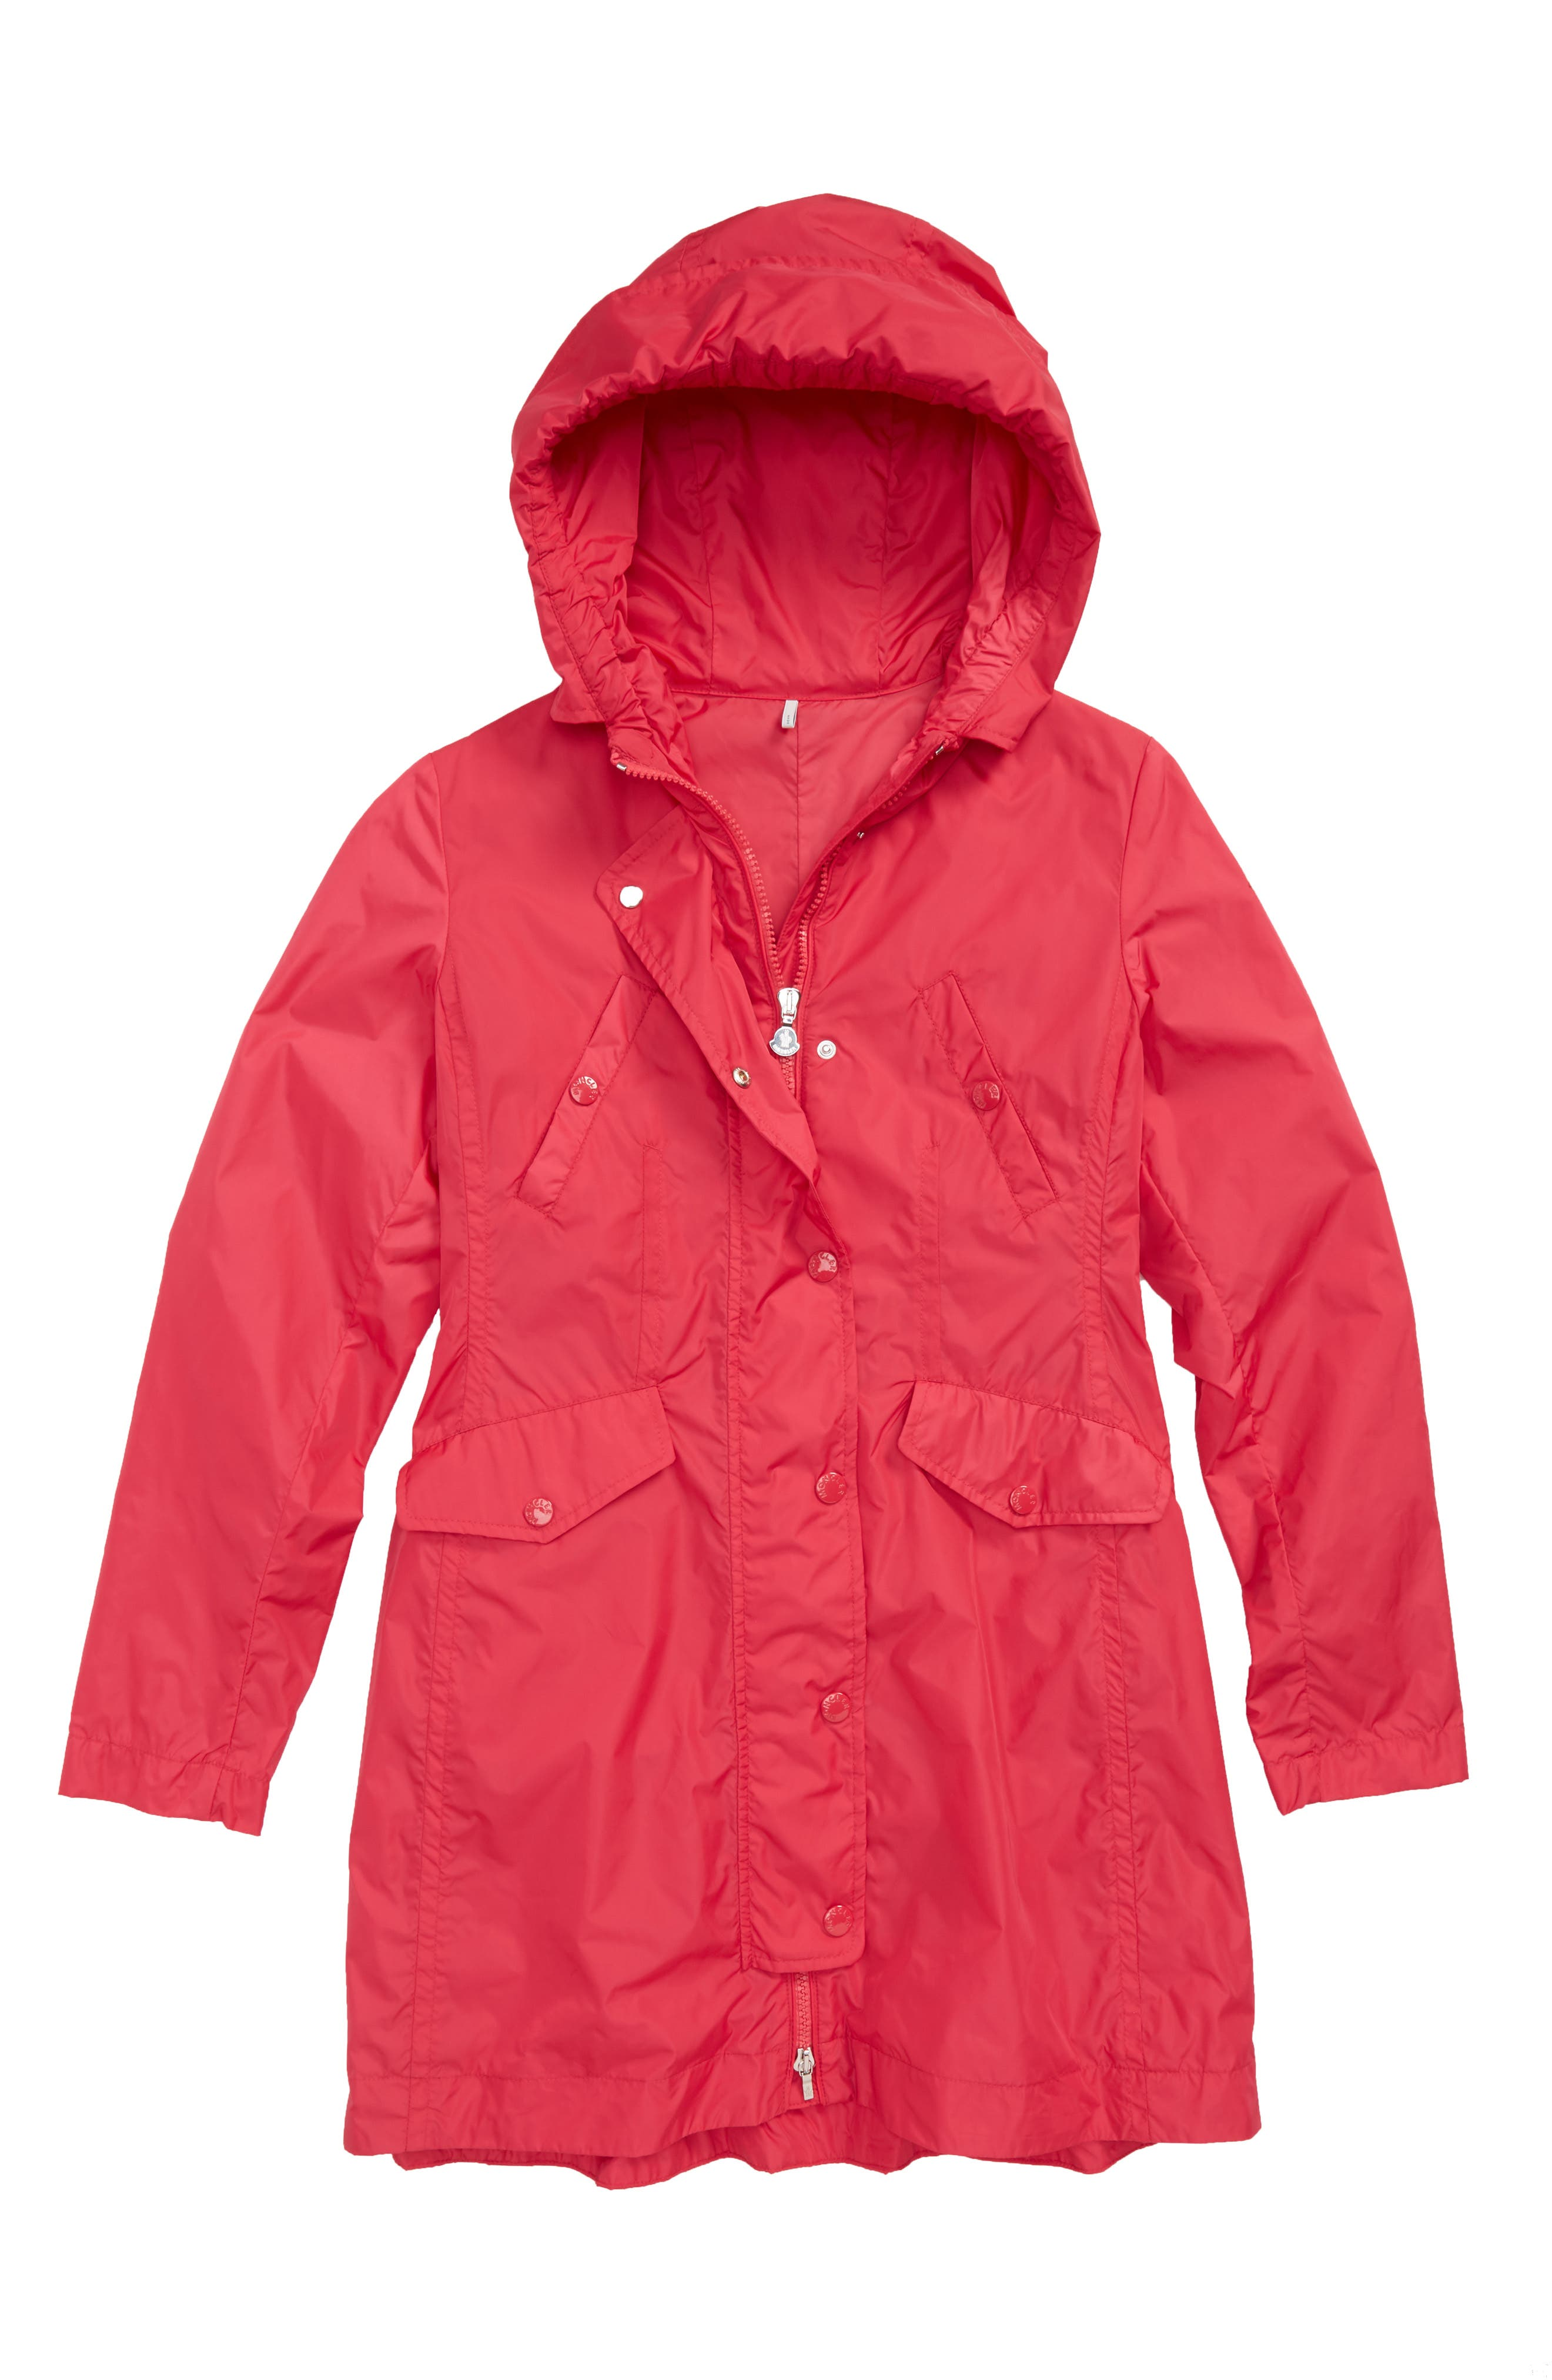 Alternate Image 1 Selected - Moncler Audrey Longline Raincoat (Little Girls & Big Girls)